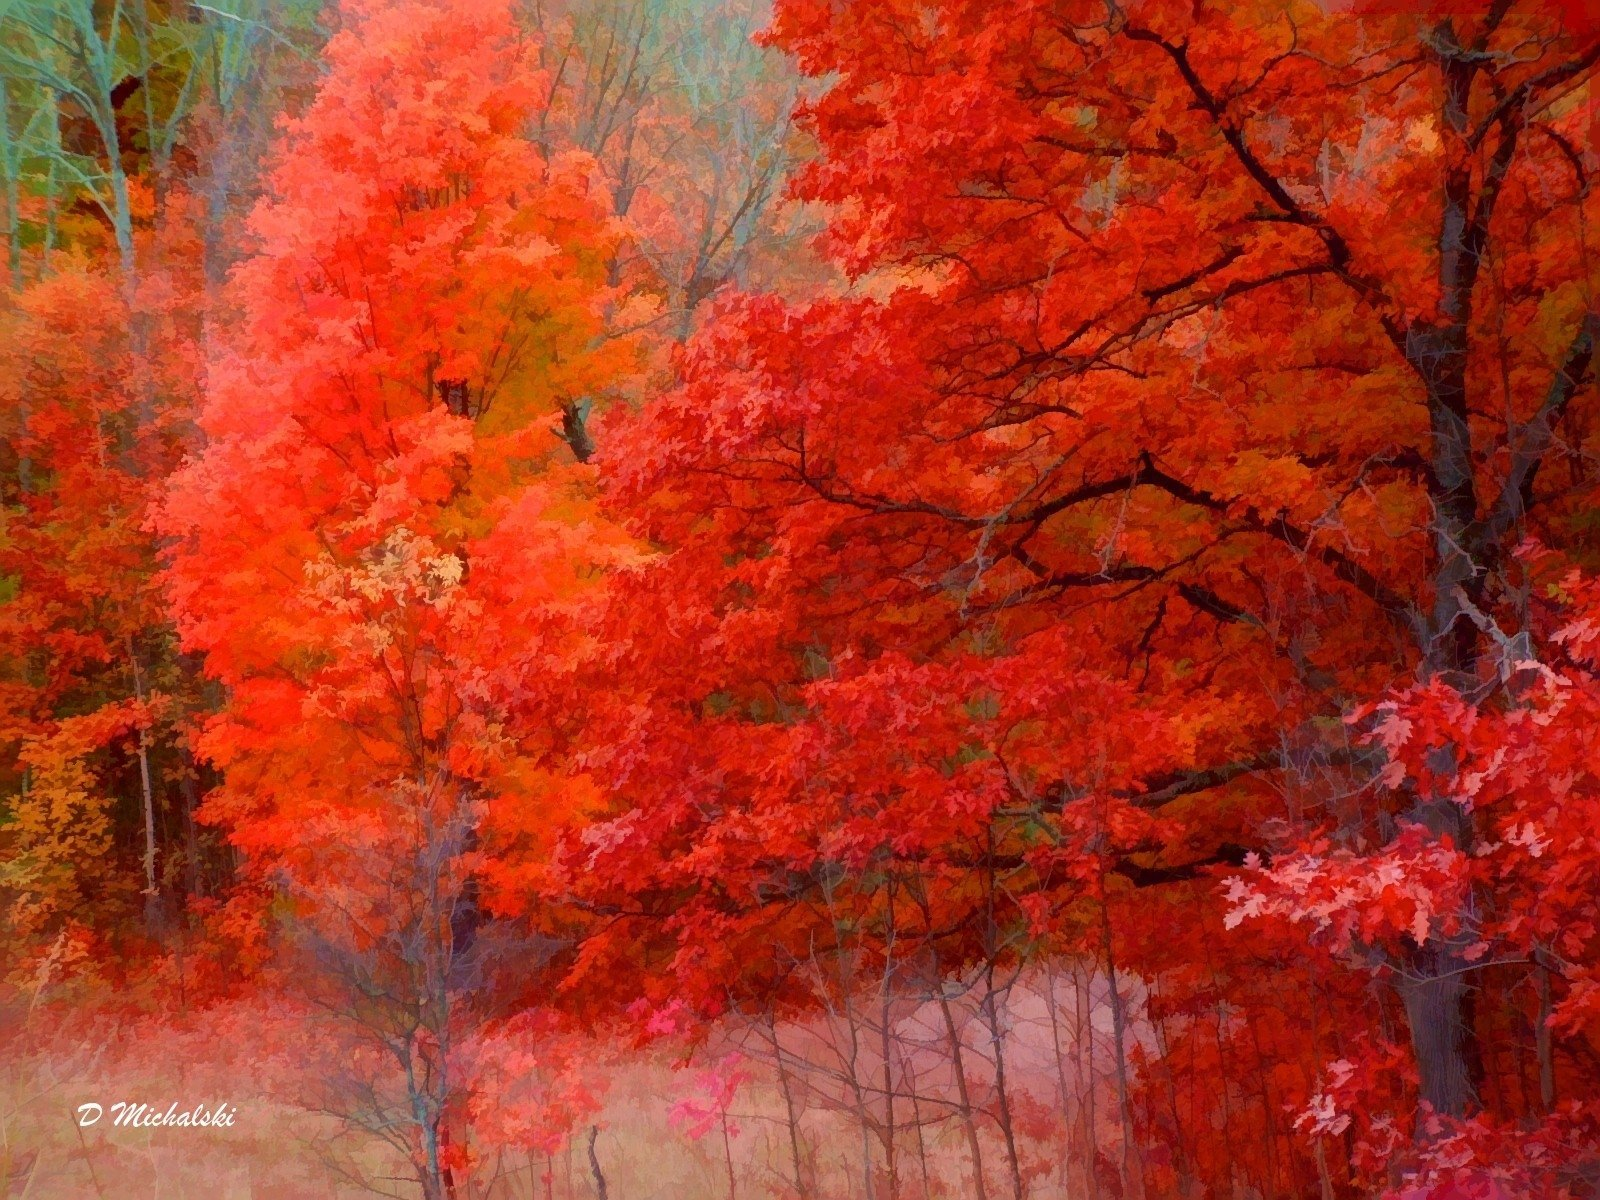 http://4.bp.blogspot.com/_zA20Z2zzbEM/S9UmoloK--I/AAAAAAAAADg/vUzElMd7acc/s1600/Fall_in_Northern_Michigan_nature_art_computerdestkop_wallpaper_1600.jpg